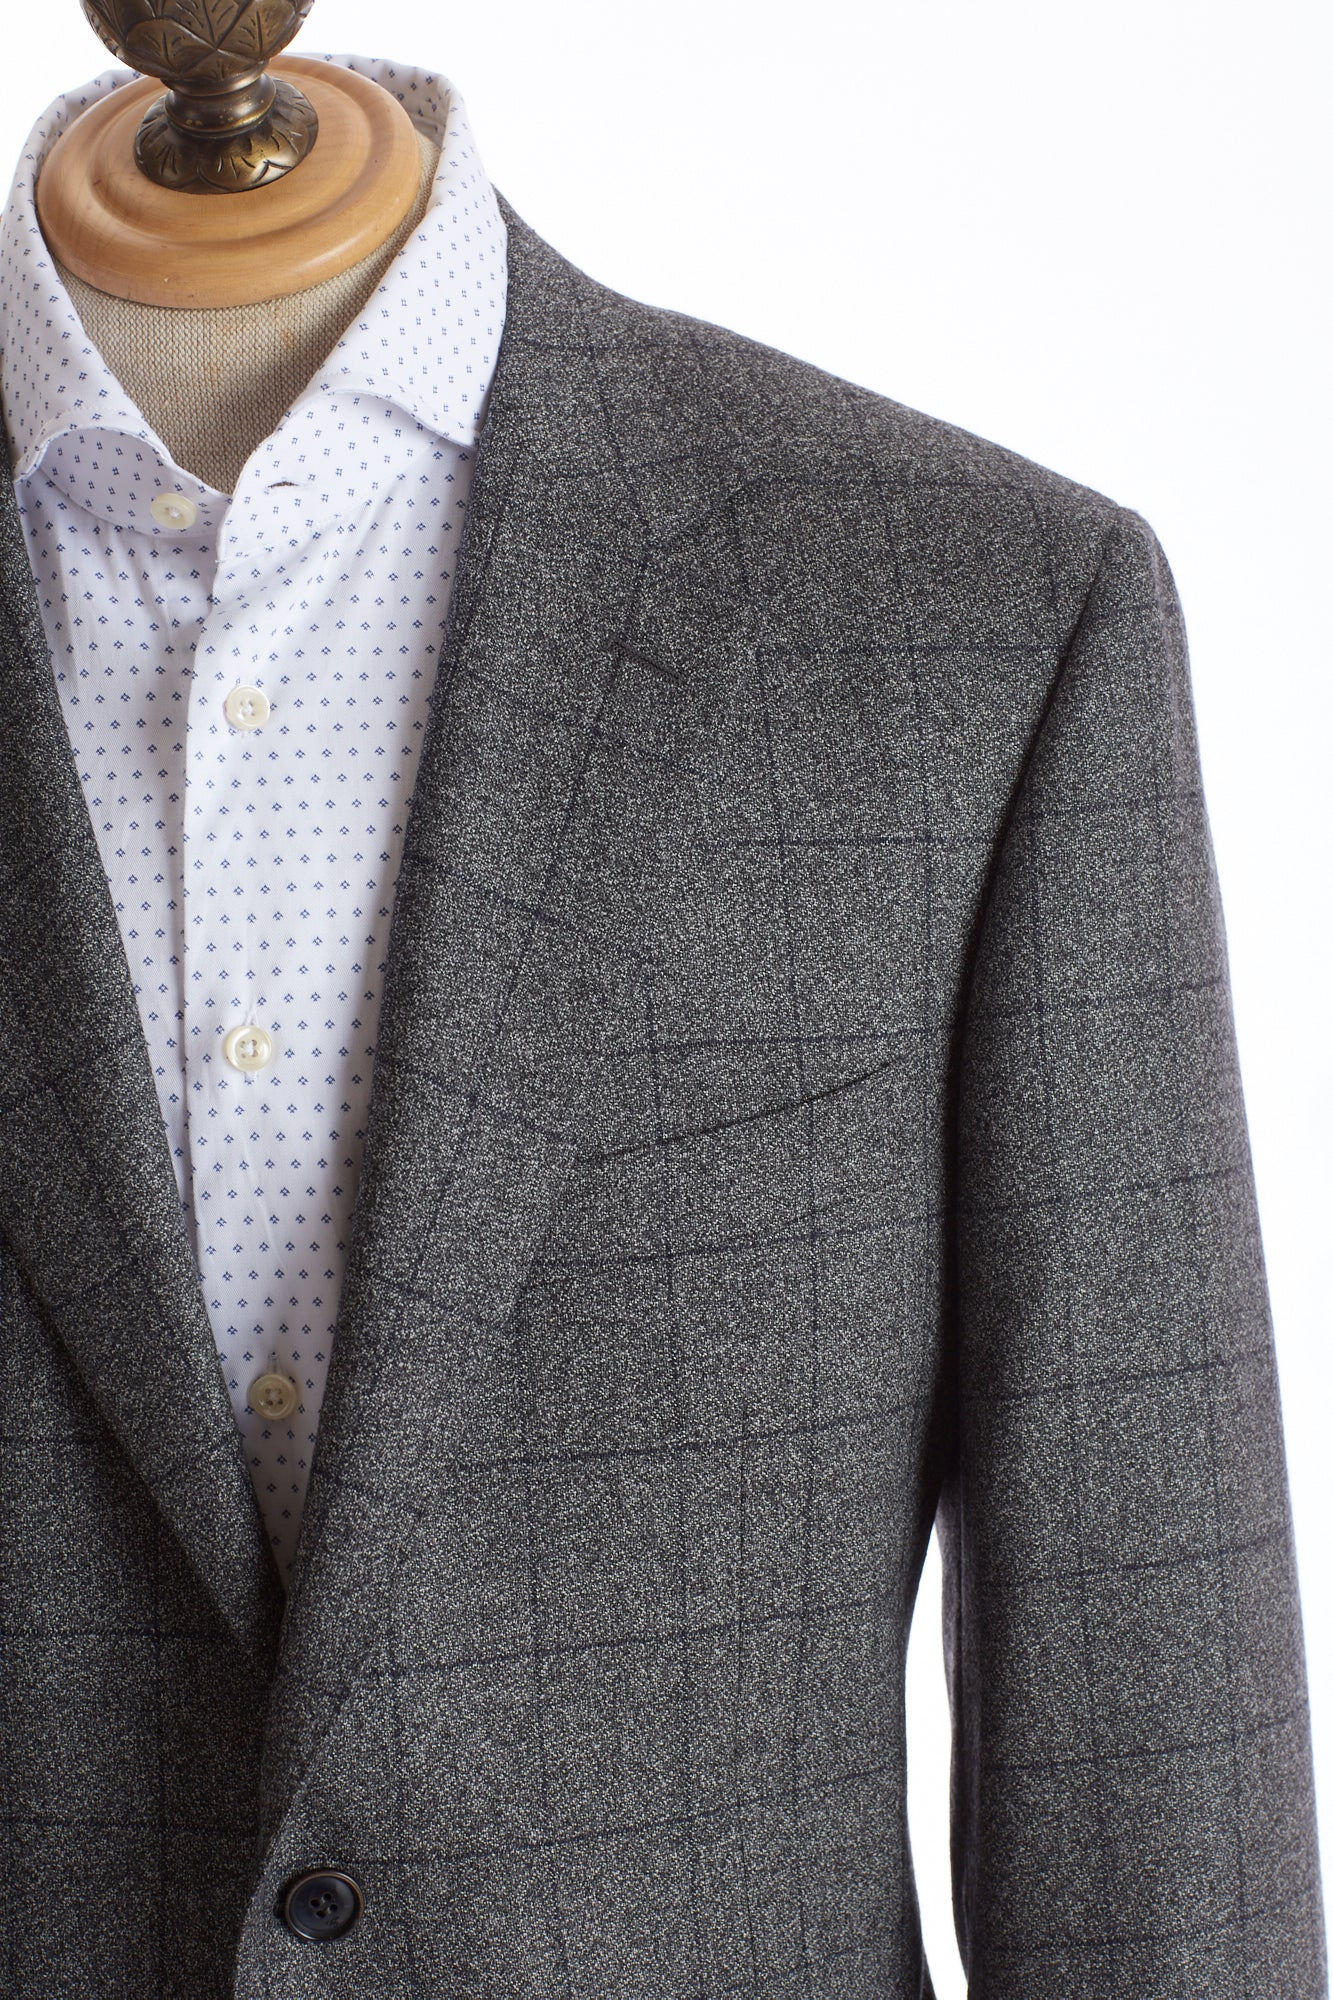 Canali Grey Windowpane Suit Lapel